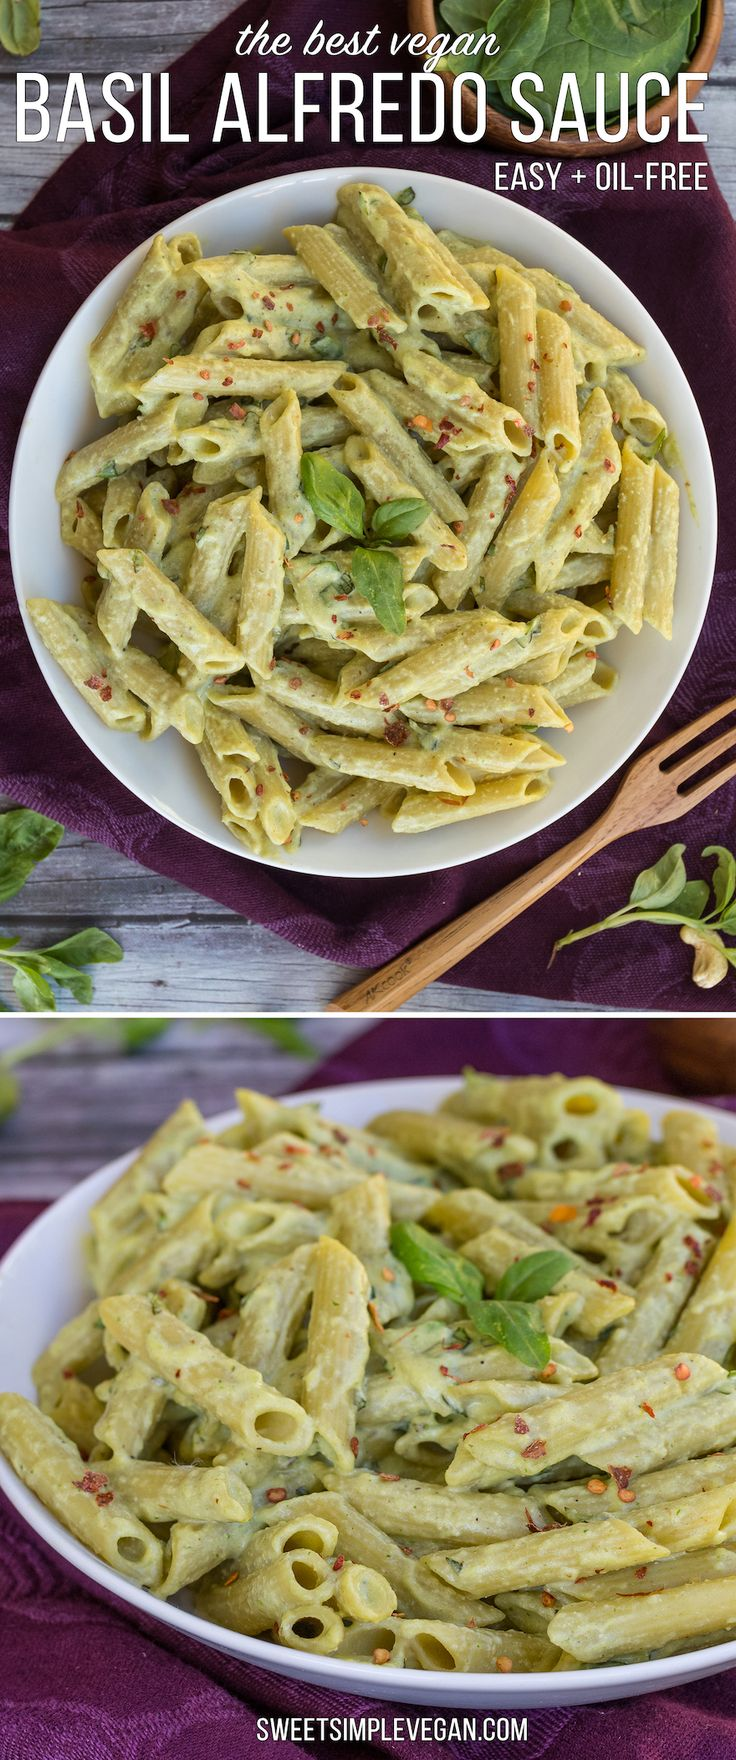 The Best Creamy Basil Alfredo Sauce {Oil- & Gluten-Free} + St. Patrick's Day Recipe Round Up! -- Dare I say best? After one bite, you will know exactly why. #vegan #alfredo #sweetsimplevegan #glutenfree